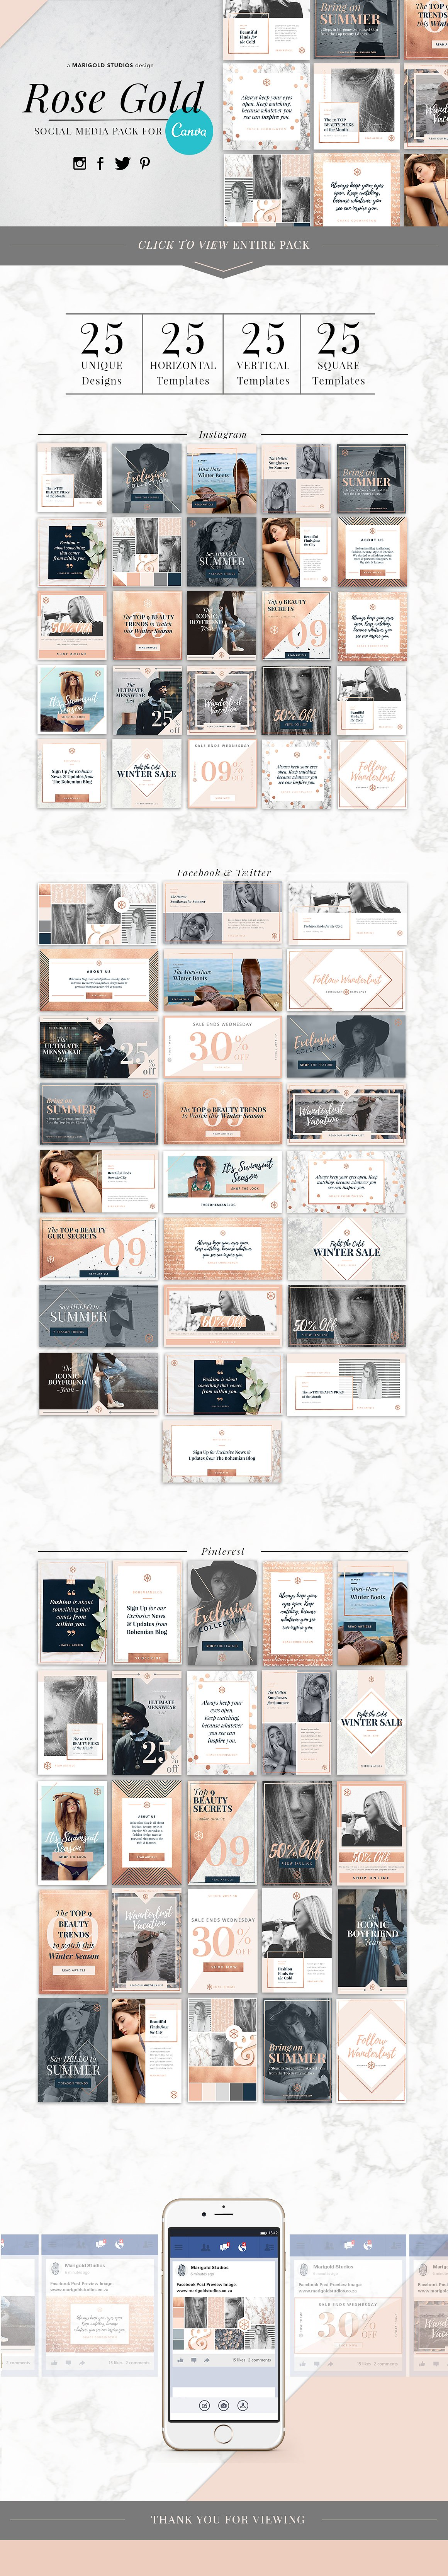 Social Media Template Canva Rose Gold for Pinterest, Instagram, Facebook, Blog.